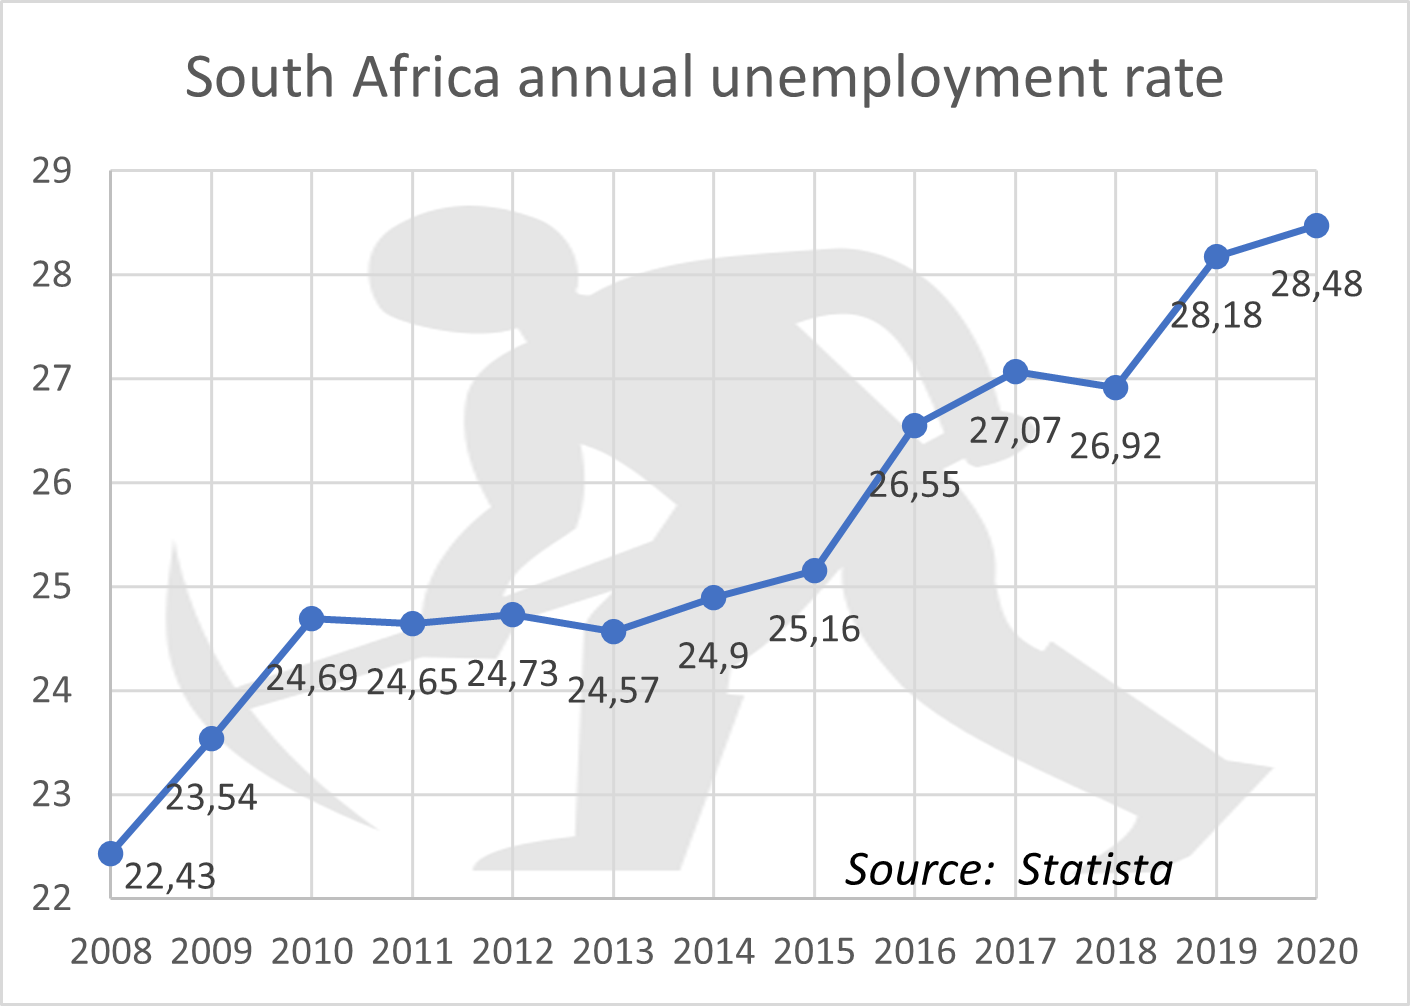 SA annual unemployment rate